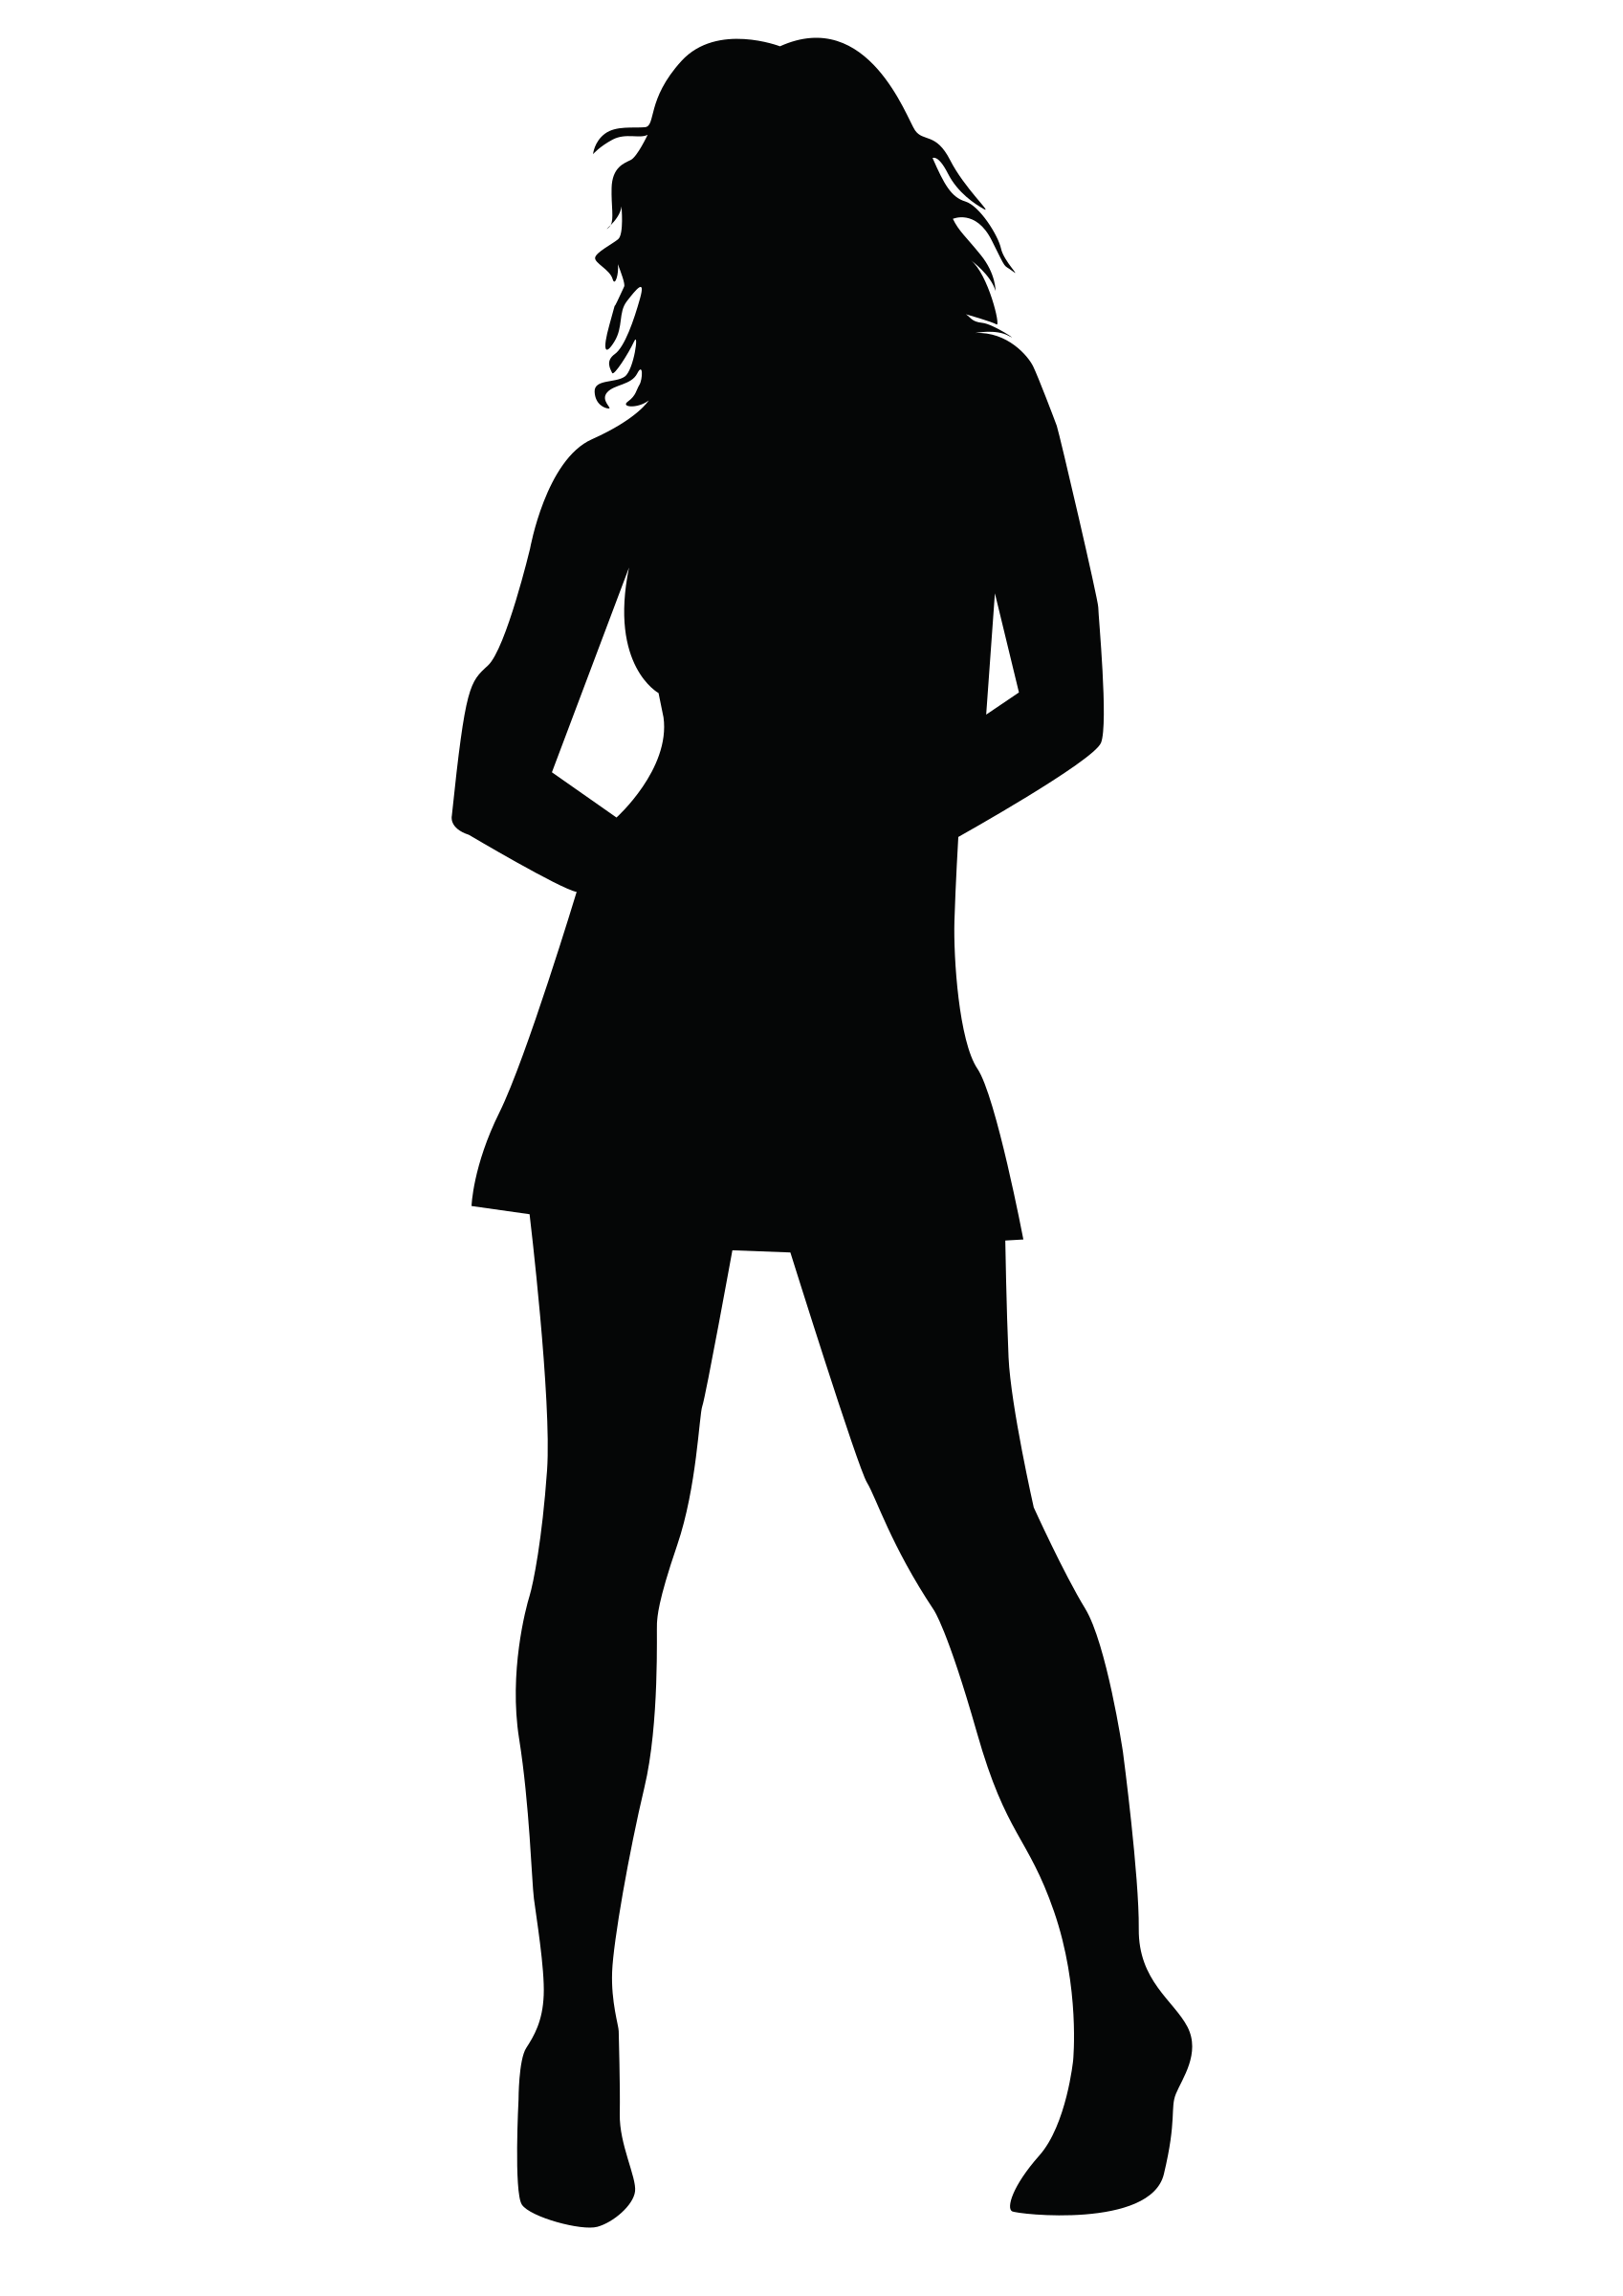 Female clipart shadow Transparent pictures on F.